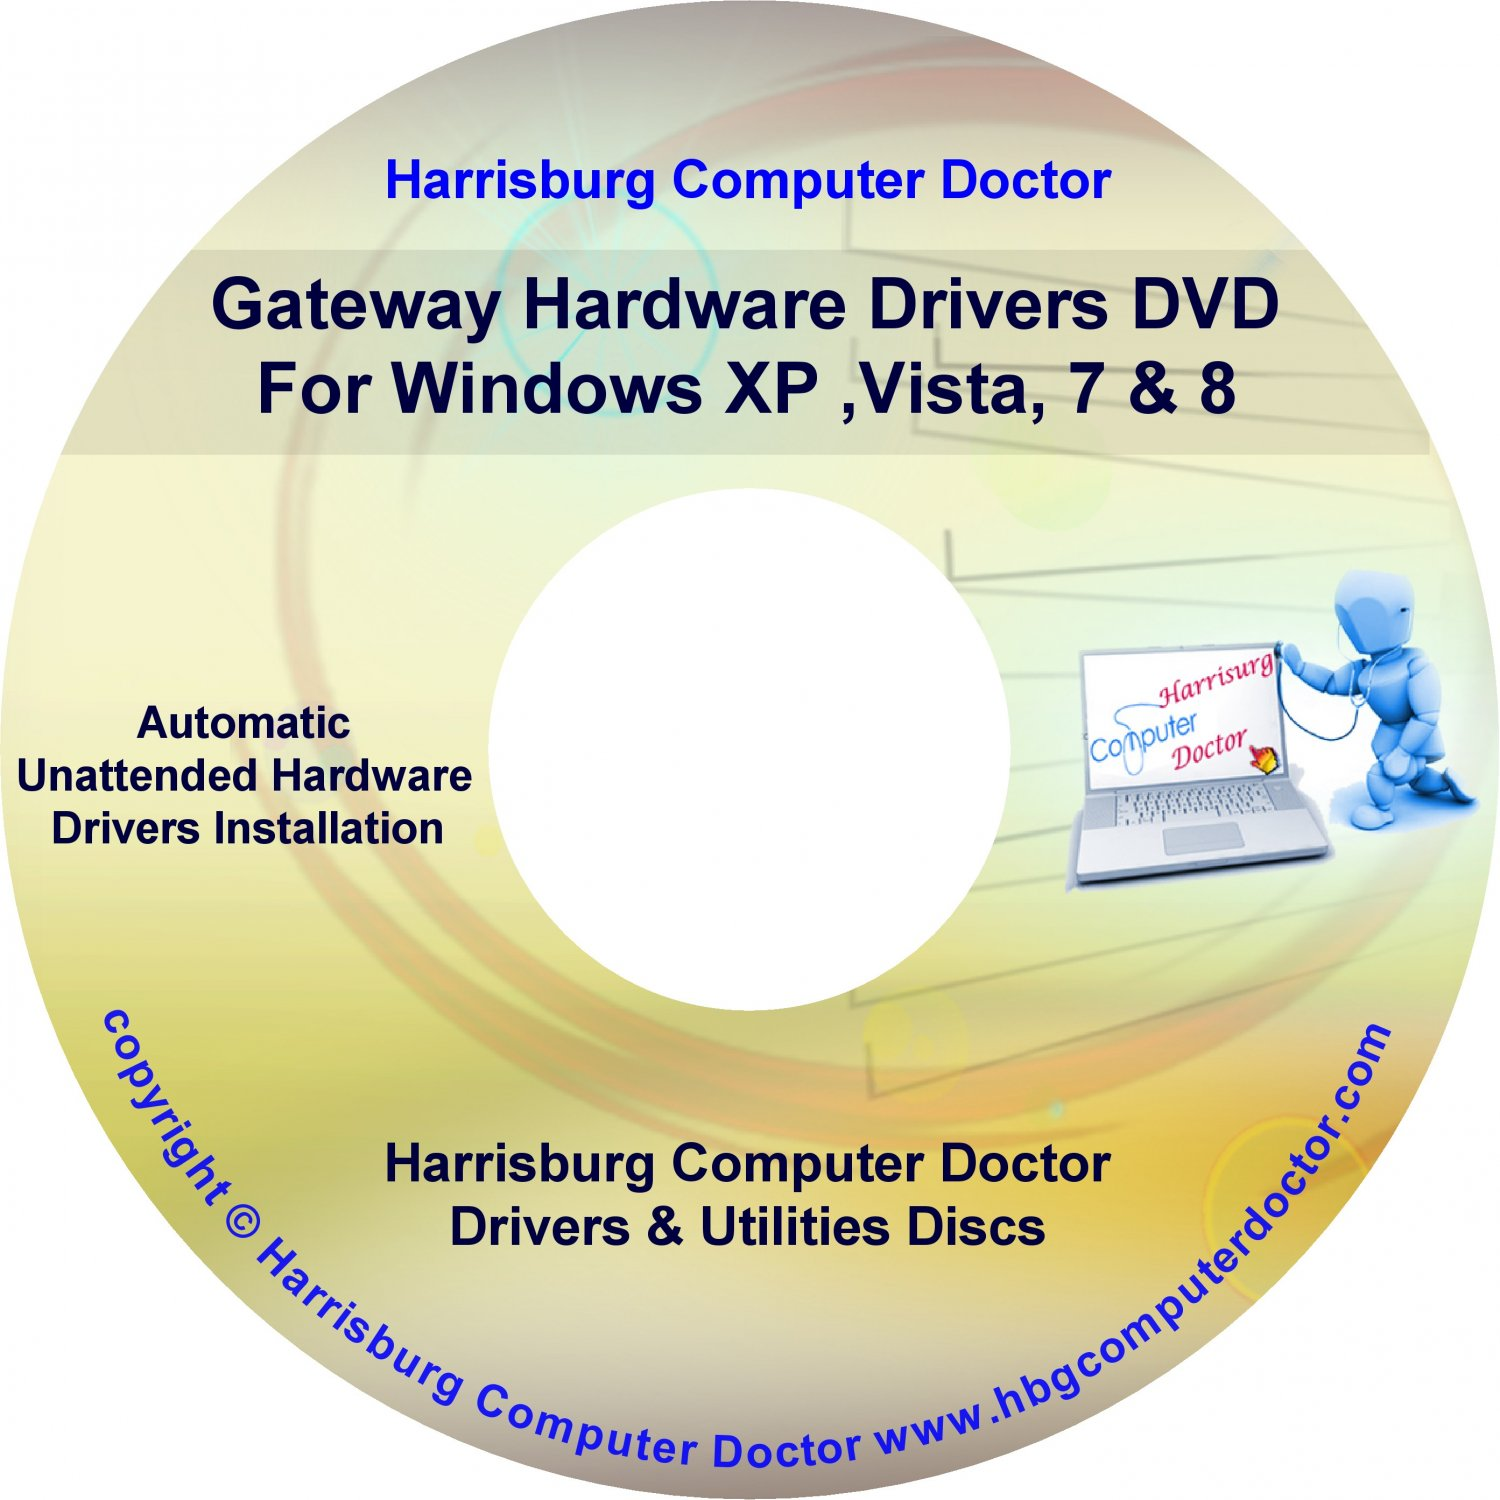 Gateway Solo 3150 Drivers DVD For Windows, XP, Vista, 7 & 8